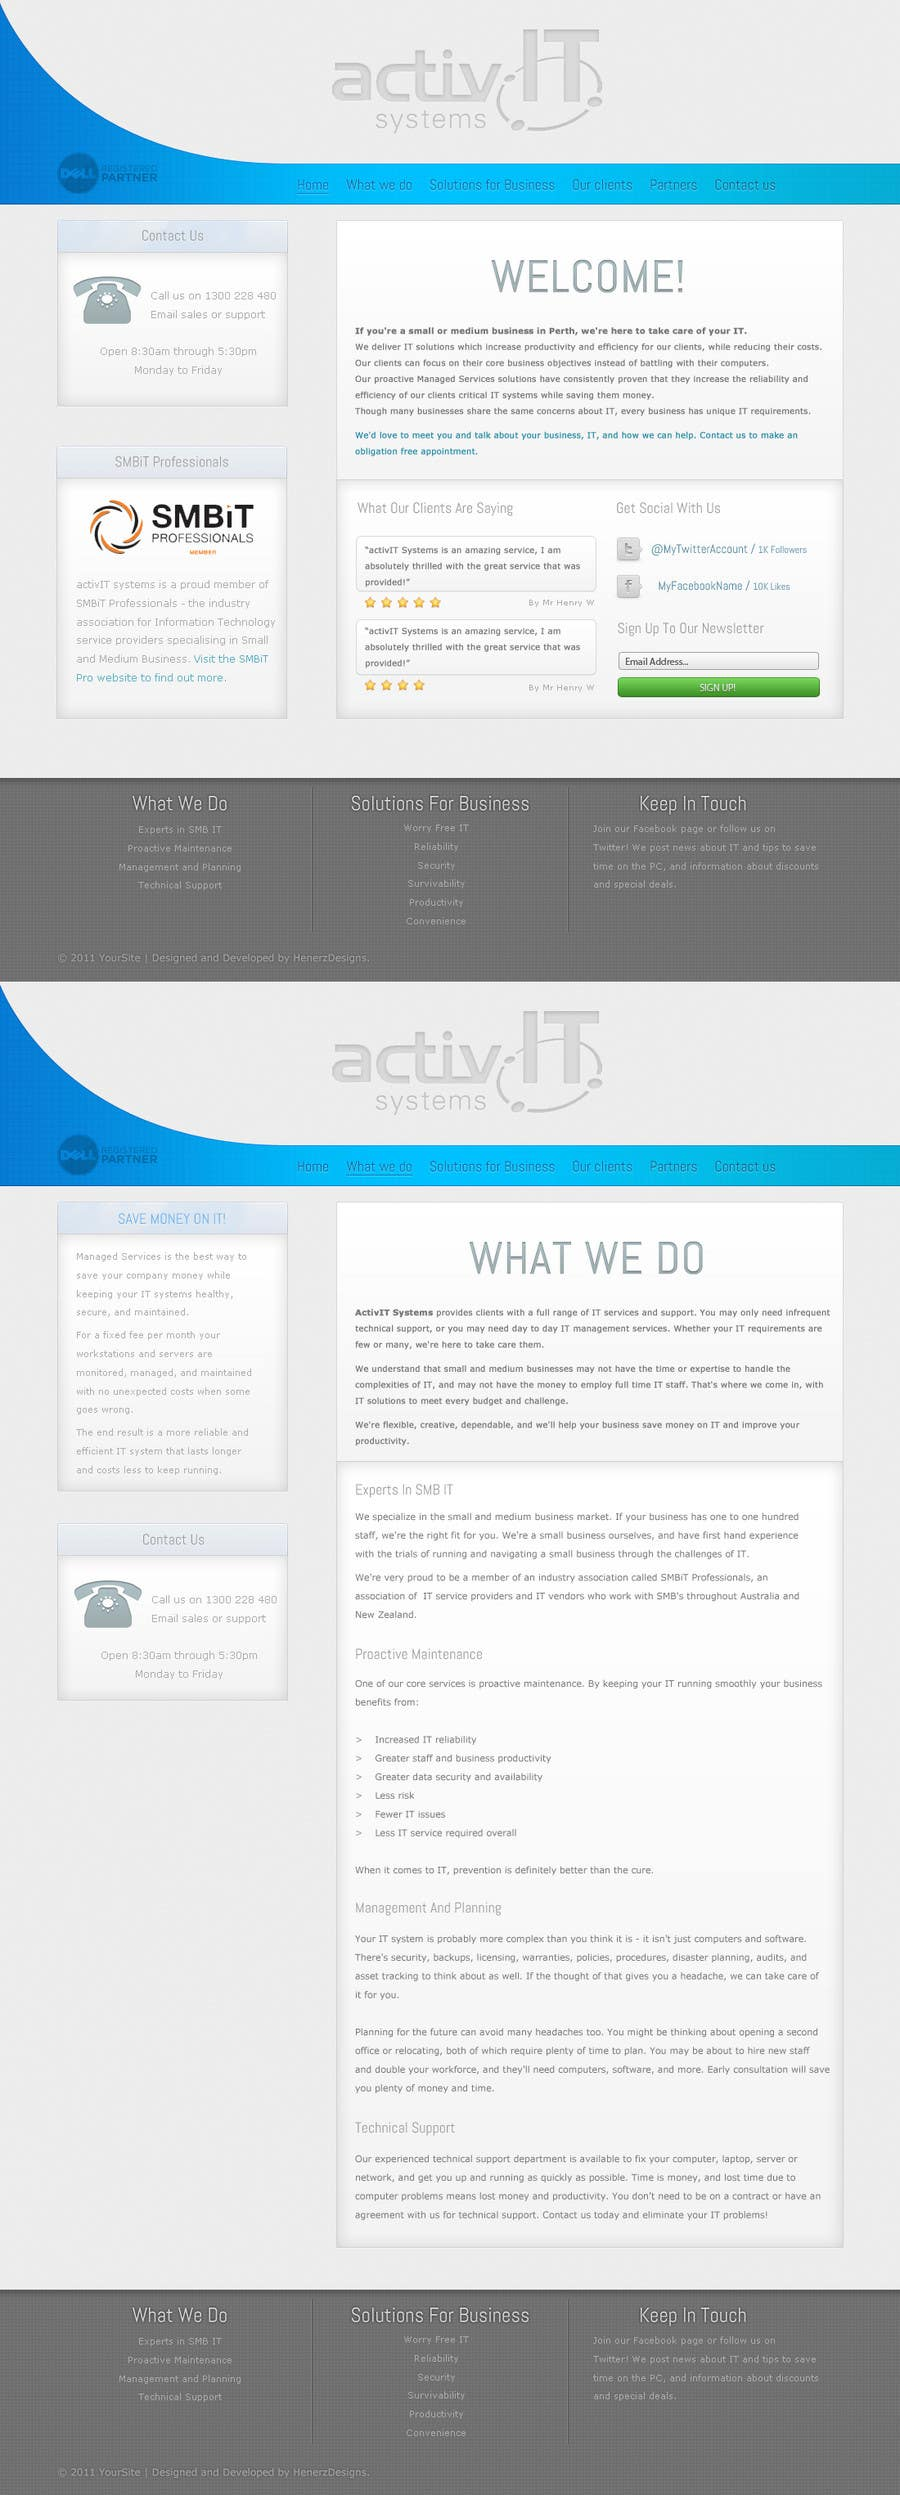 Contest Entry #37 for Website Design for activIT systems